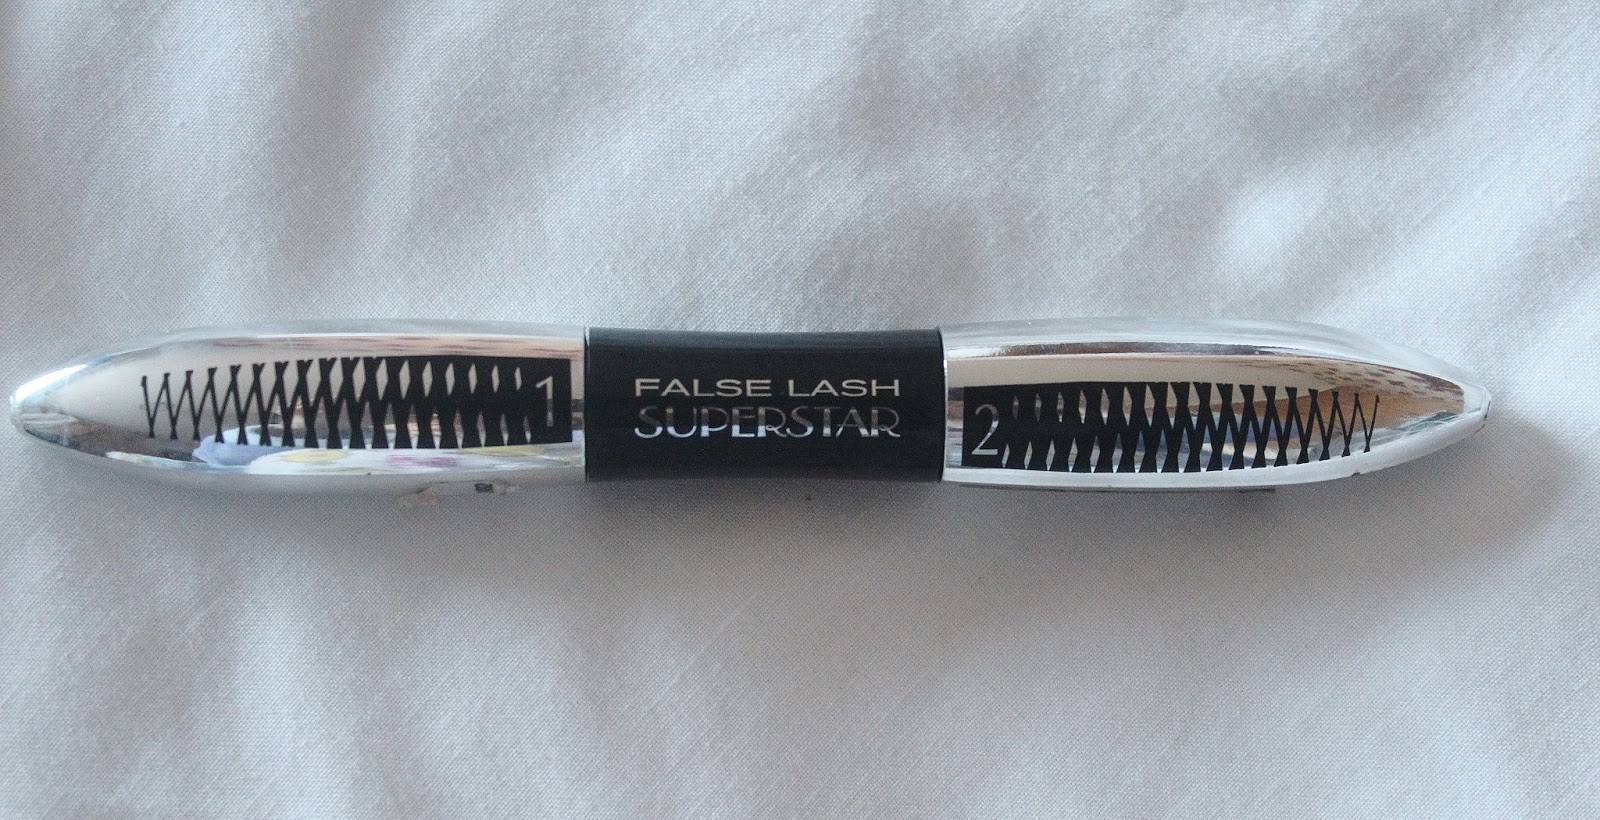 L'Oreal Paris Superstar mascara